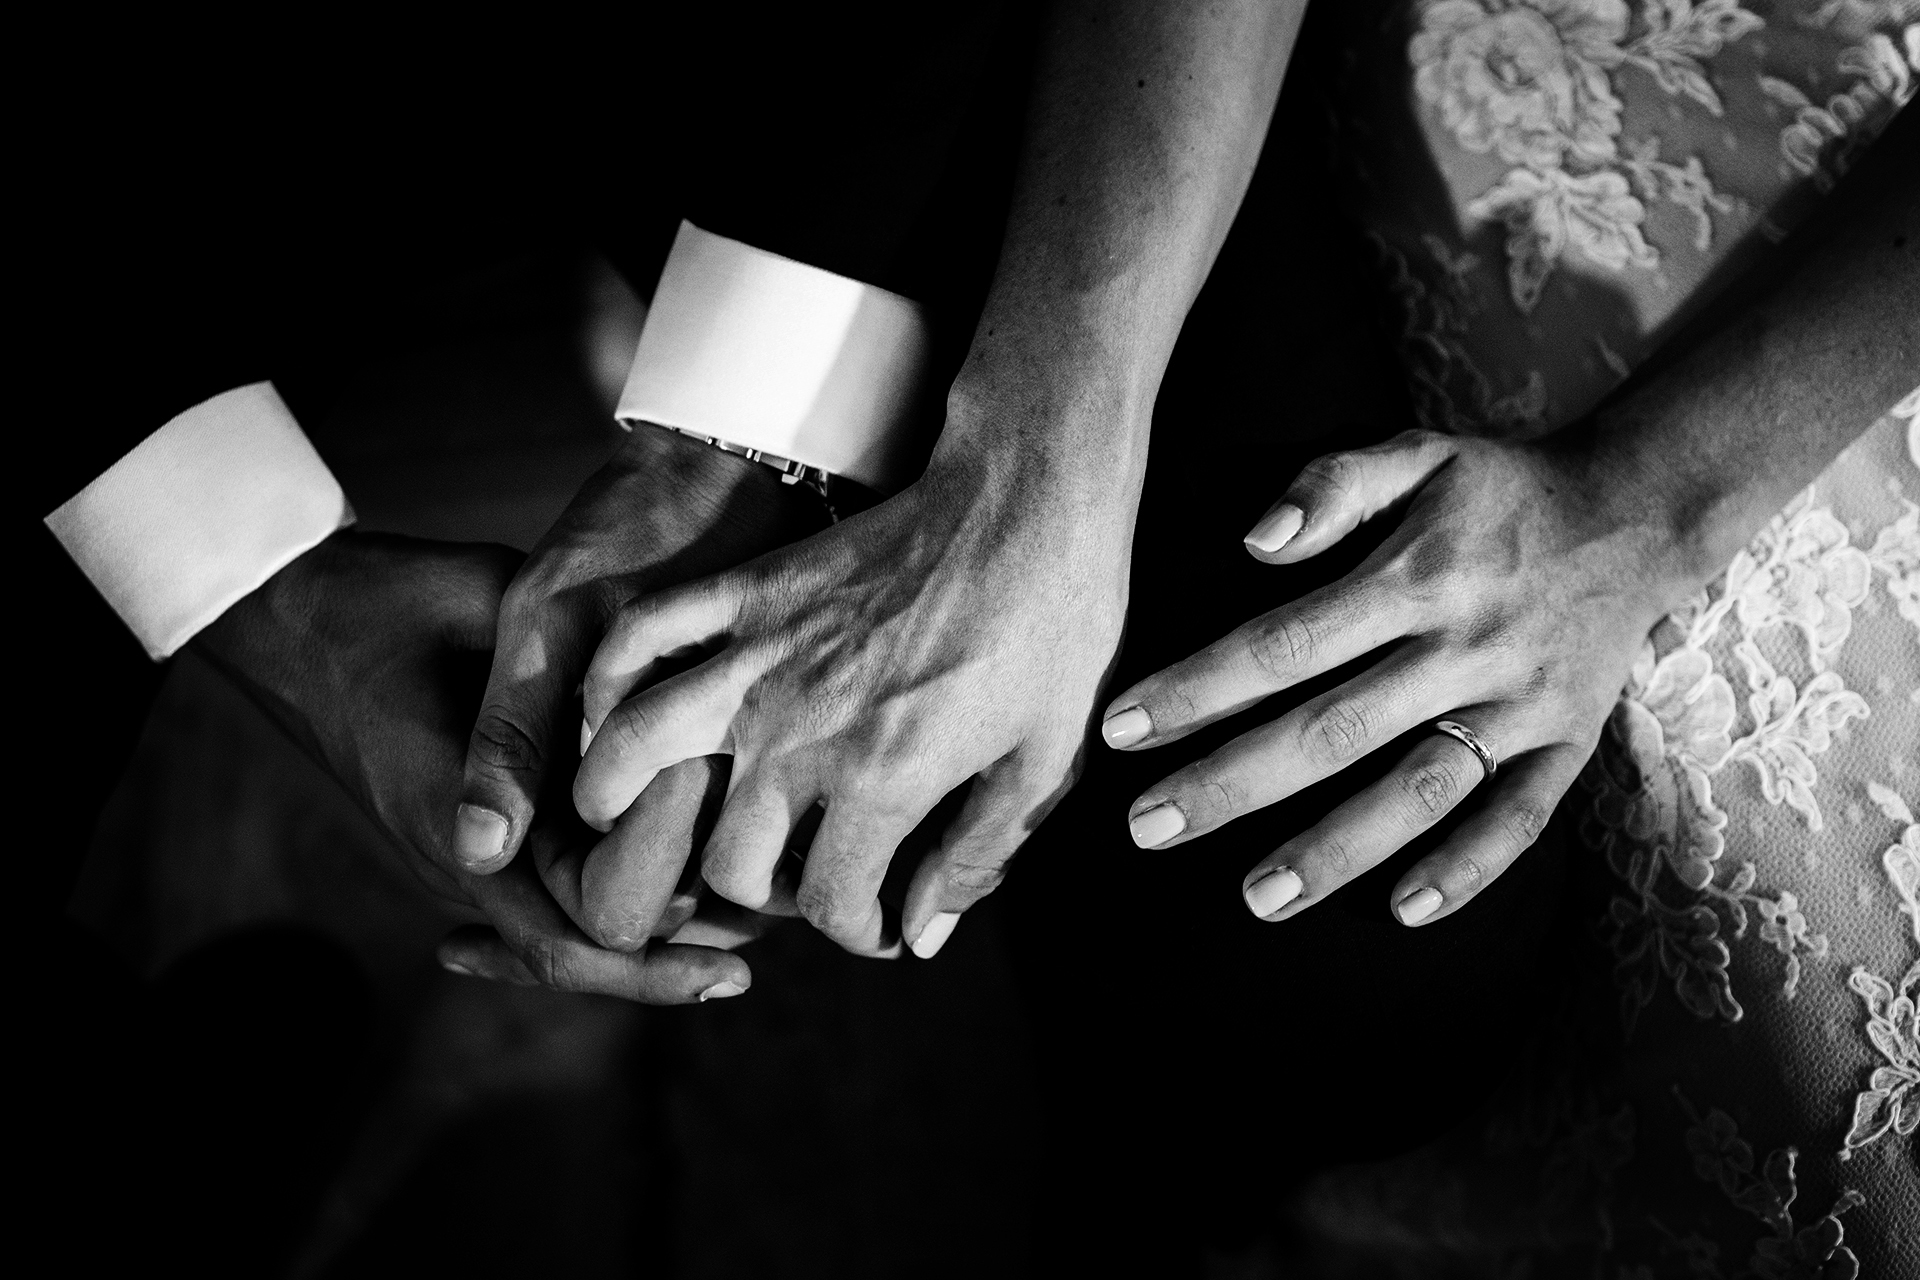 Sant'Orsola Church - Mount Erice Wedding Detail Photo | The bride intertwines her fingers with the groom's